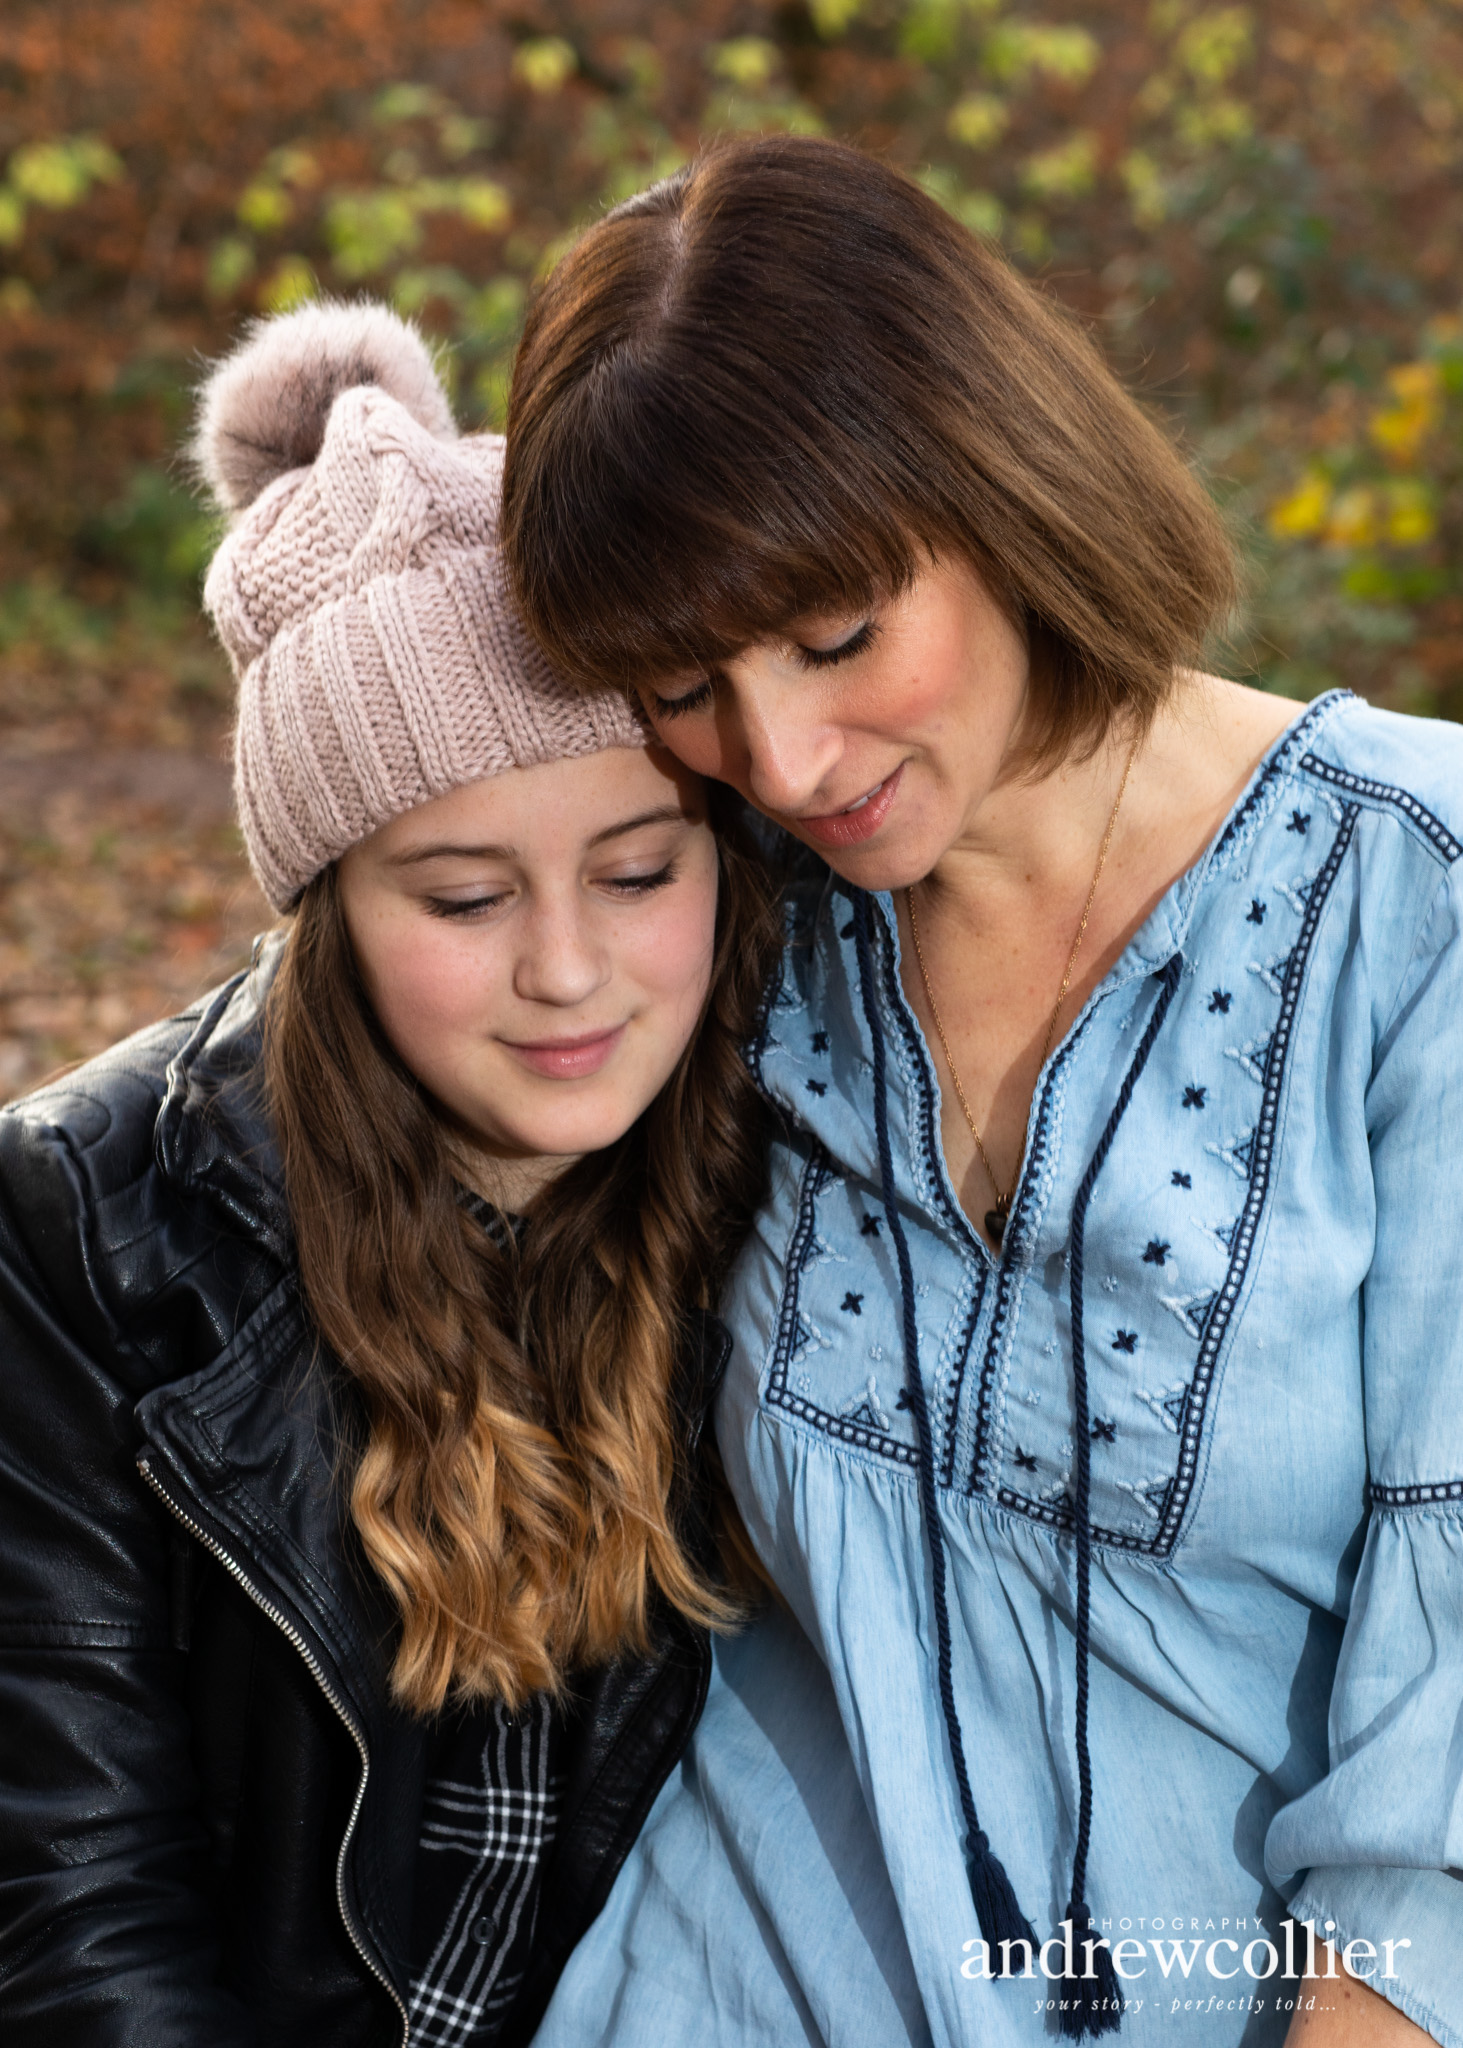 Portrait of a mum and her daughter in Autumn, Lymm near Warrington, Cheshire